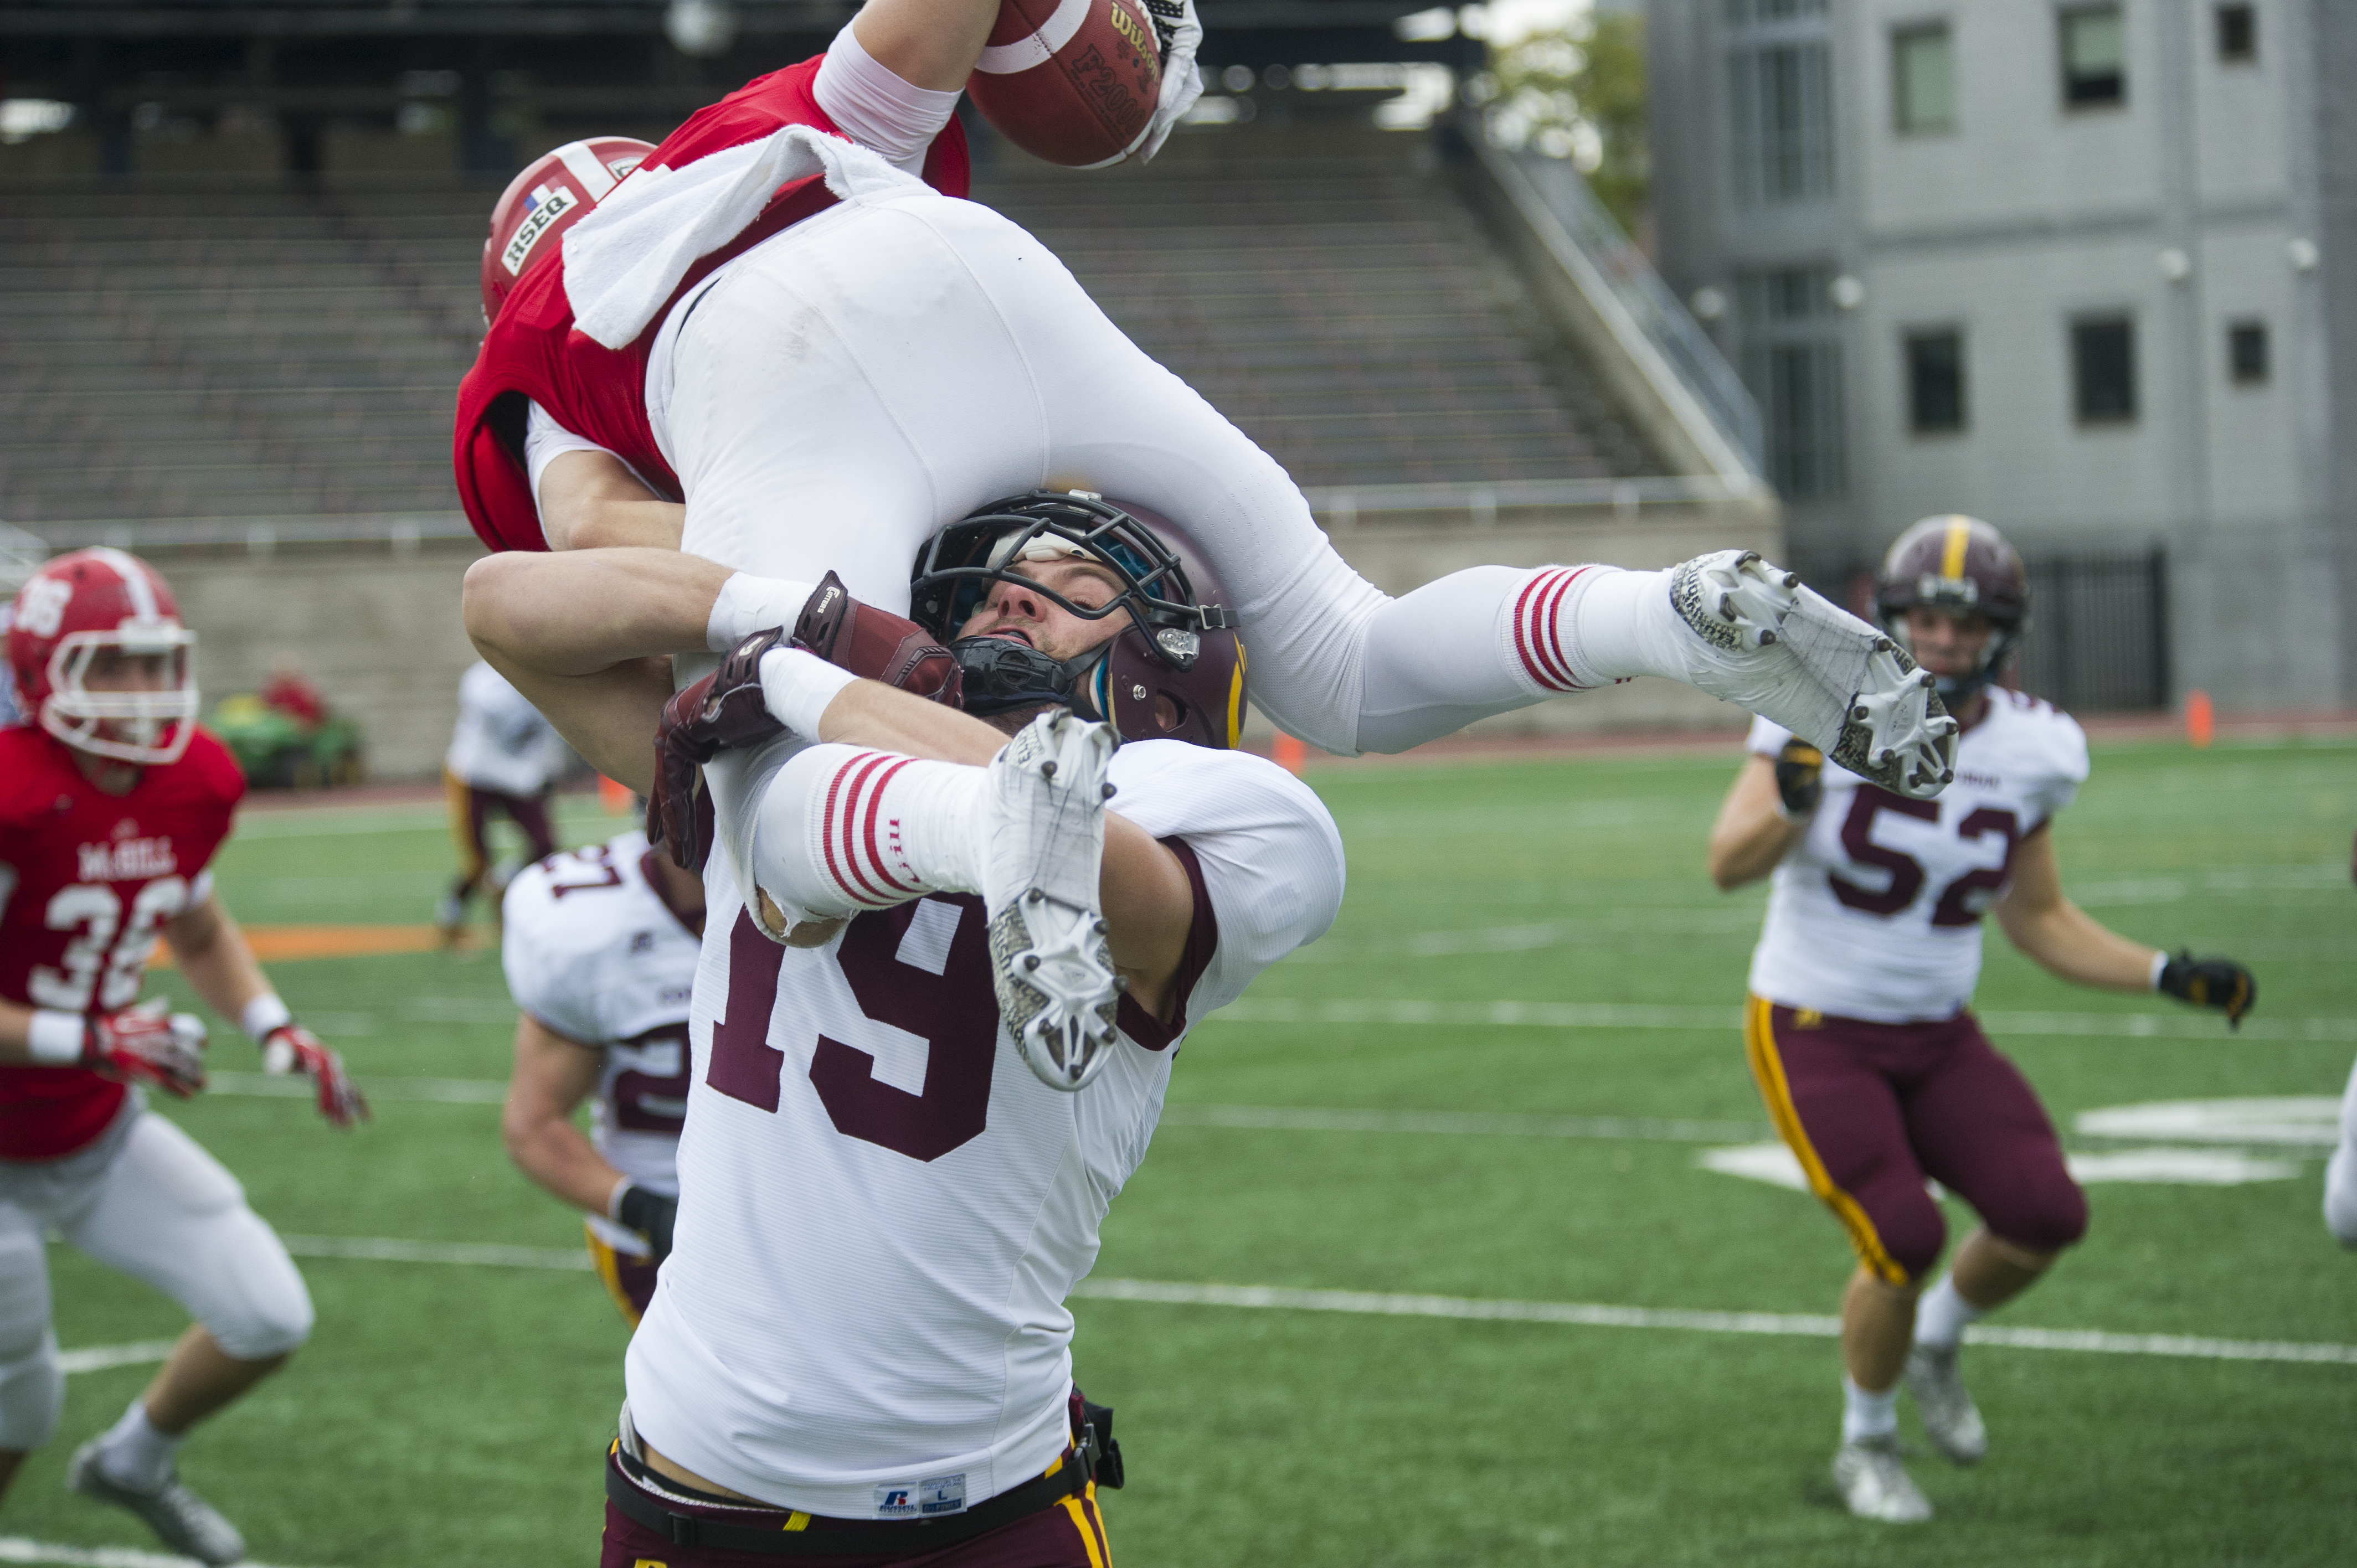 Halfback Sean Mayzes tackles a Redman player during Saturday's game. Photo by Andrej Ivanov.